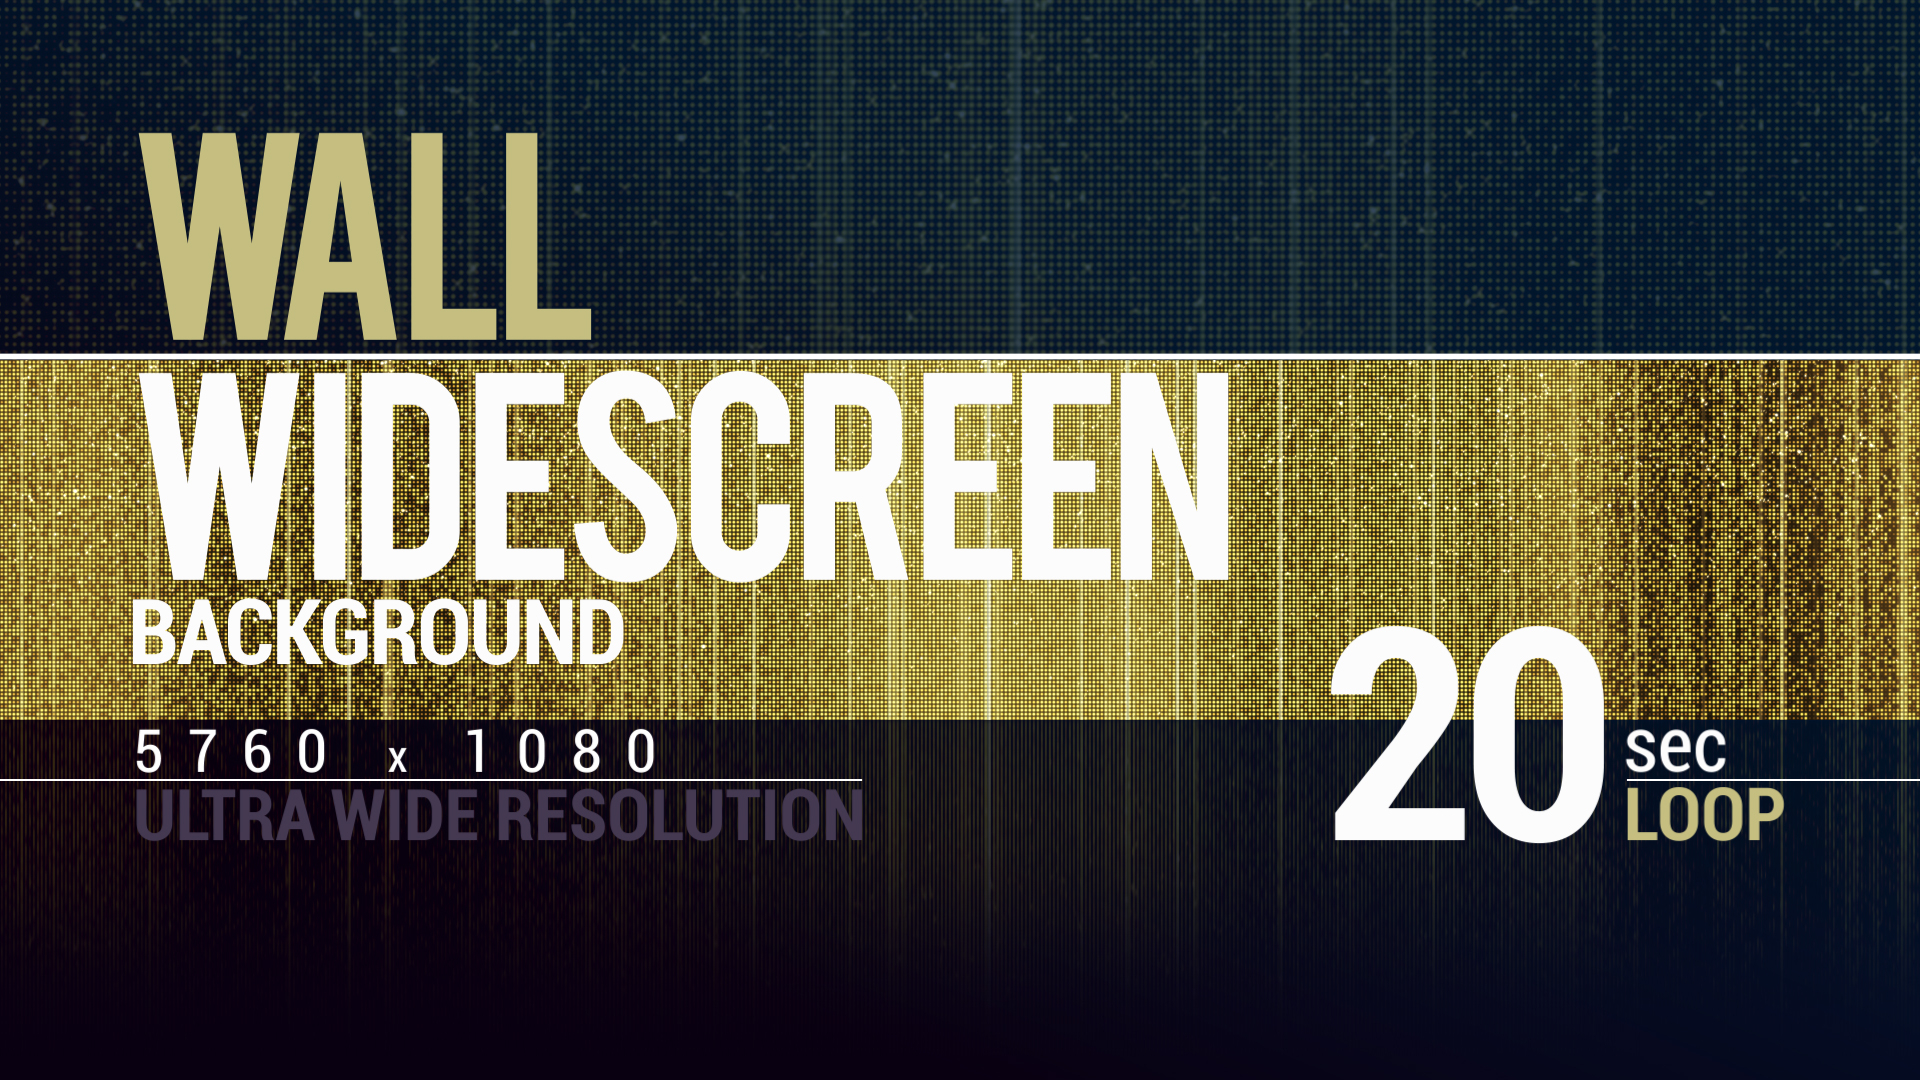 Brilliant Golden Stage Wall Widescreen 4K Backgrou